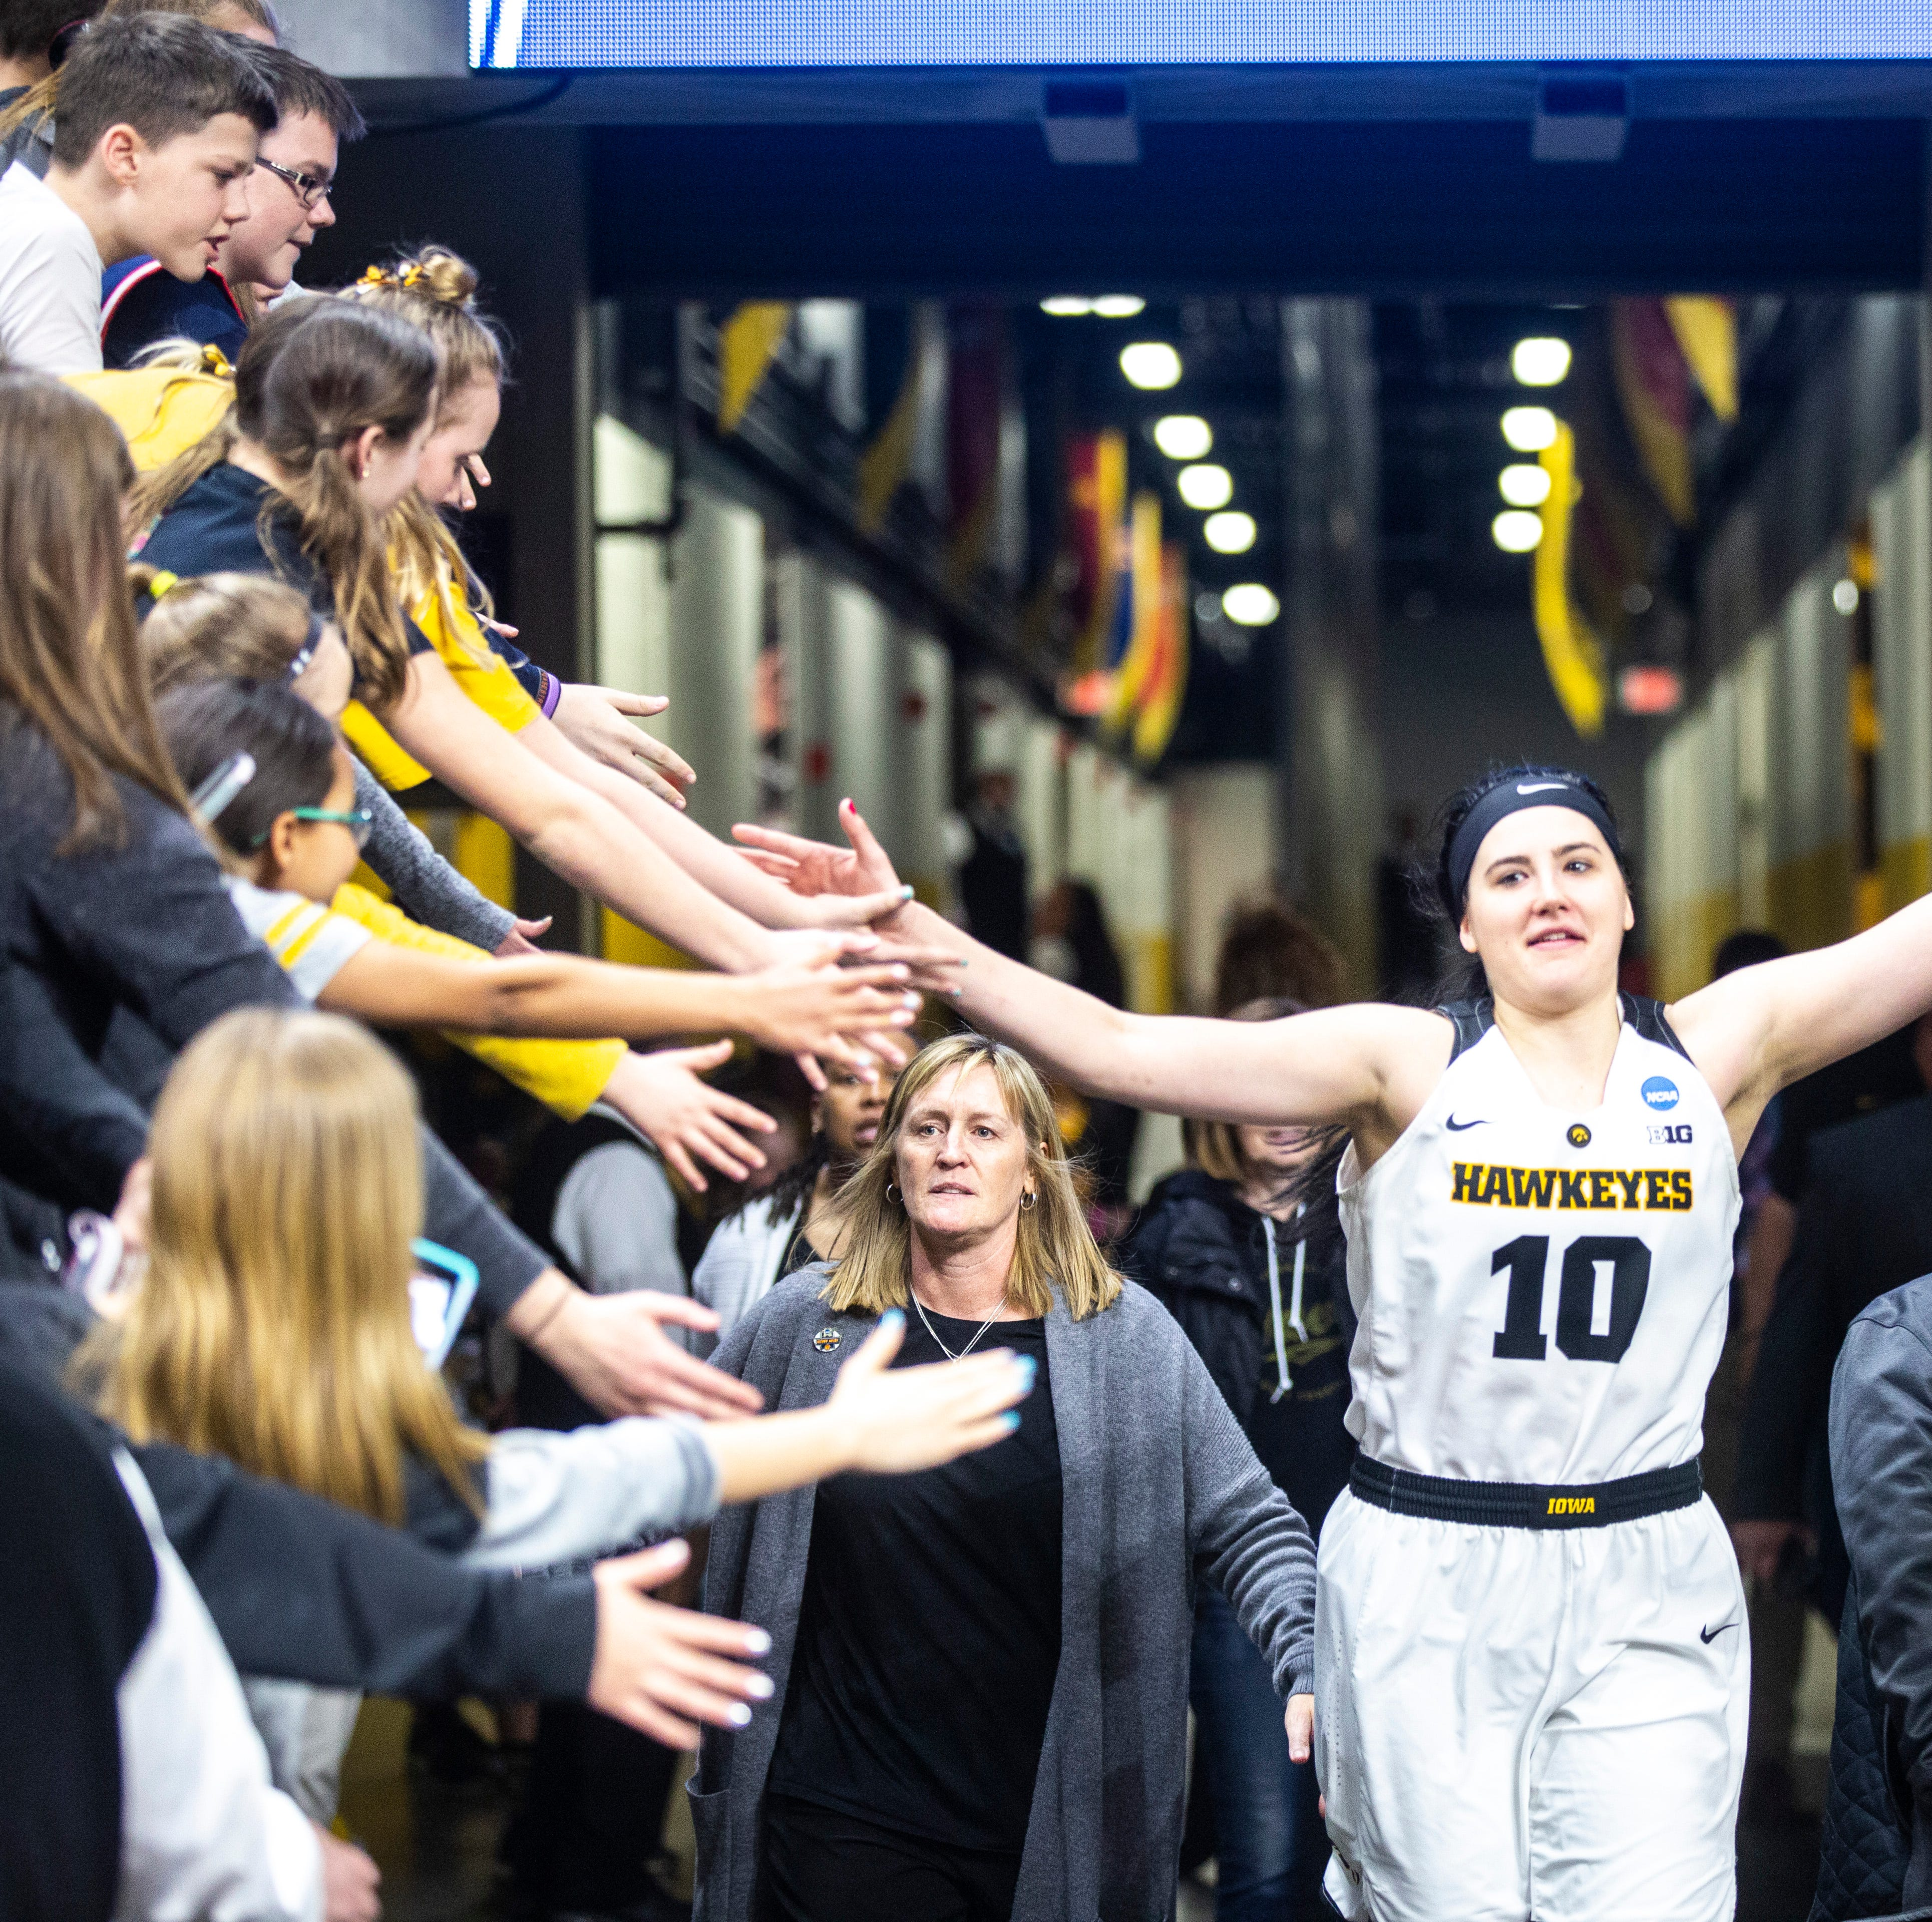 Dallas Wings CEO on Megan Gustafson: 'How she's led Iowa ... is very impressive'